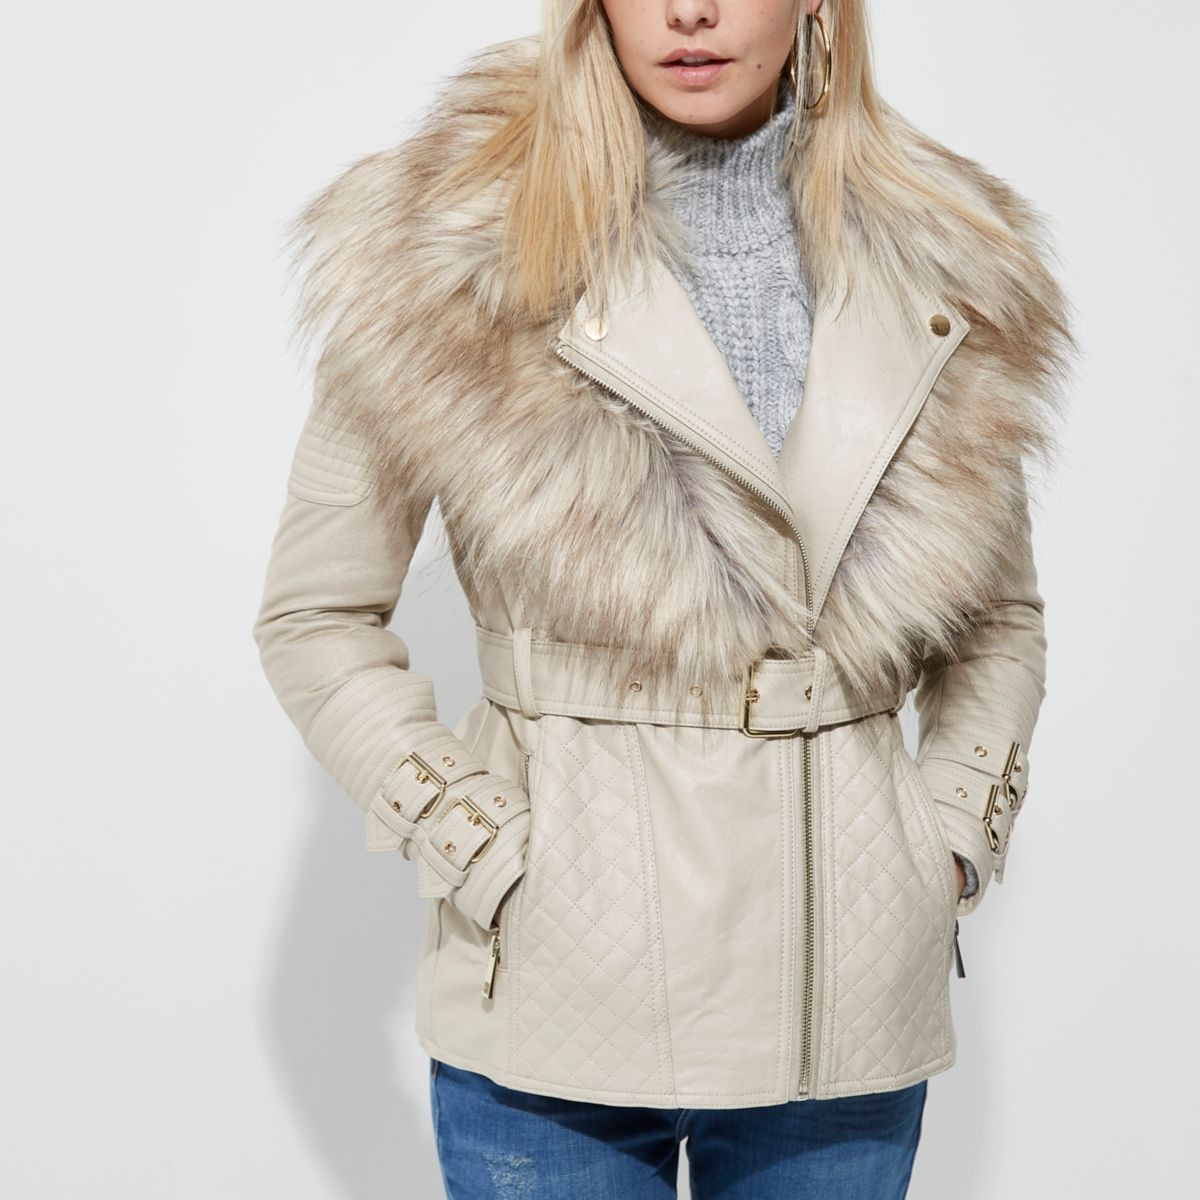 The Lulus Warm Your Heart Cream Faux Fur Bomber Jacket will have you looking cute and feeling cozy! Soft and short faux fur lends a sophisticated feel to this midi-length bomber jacket with ribbed knit at the collar and cuffs.